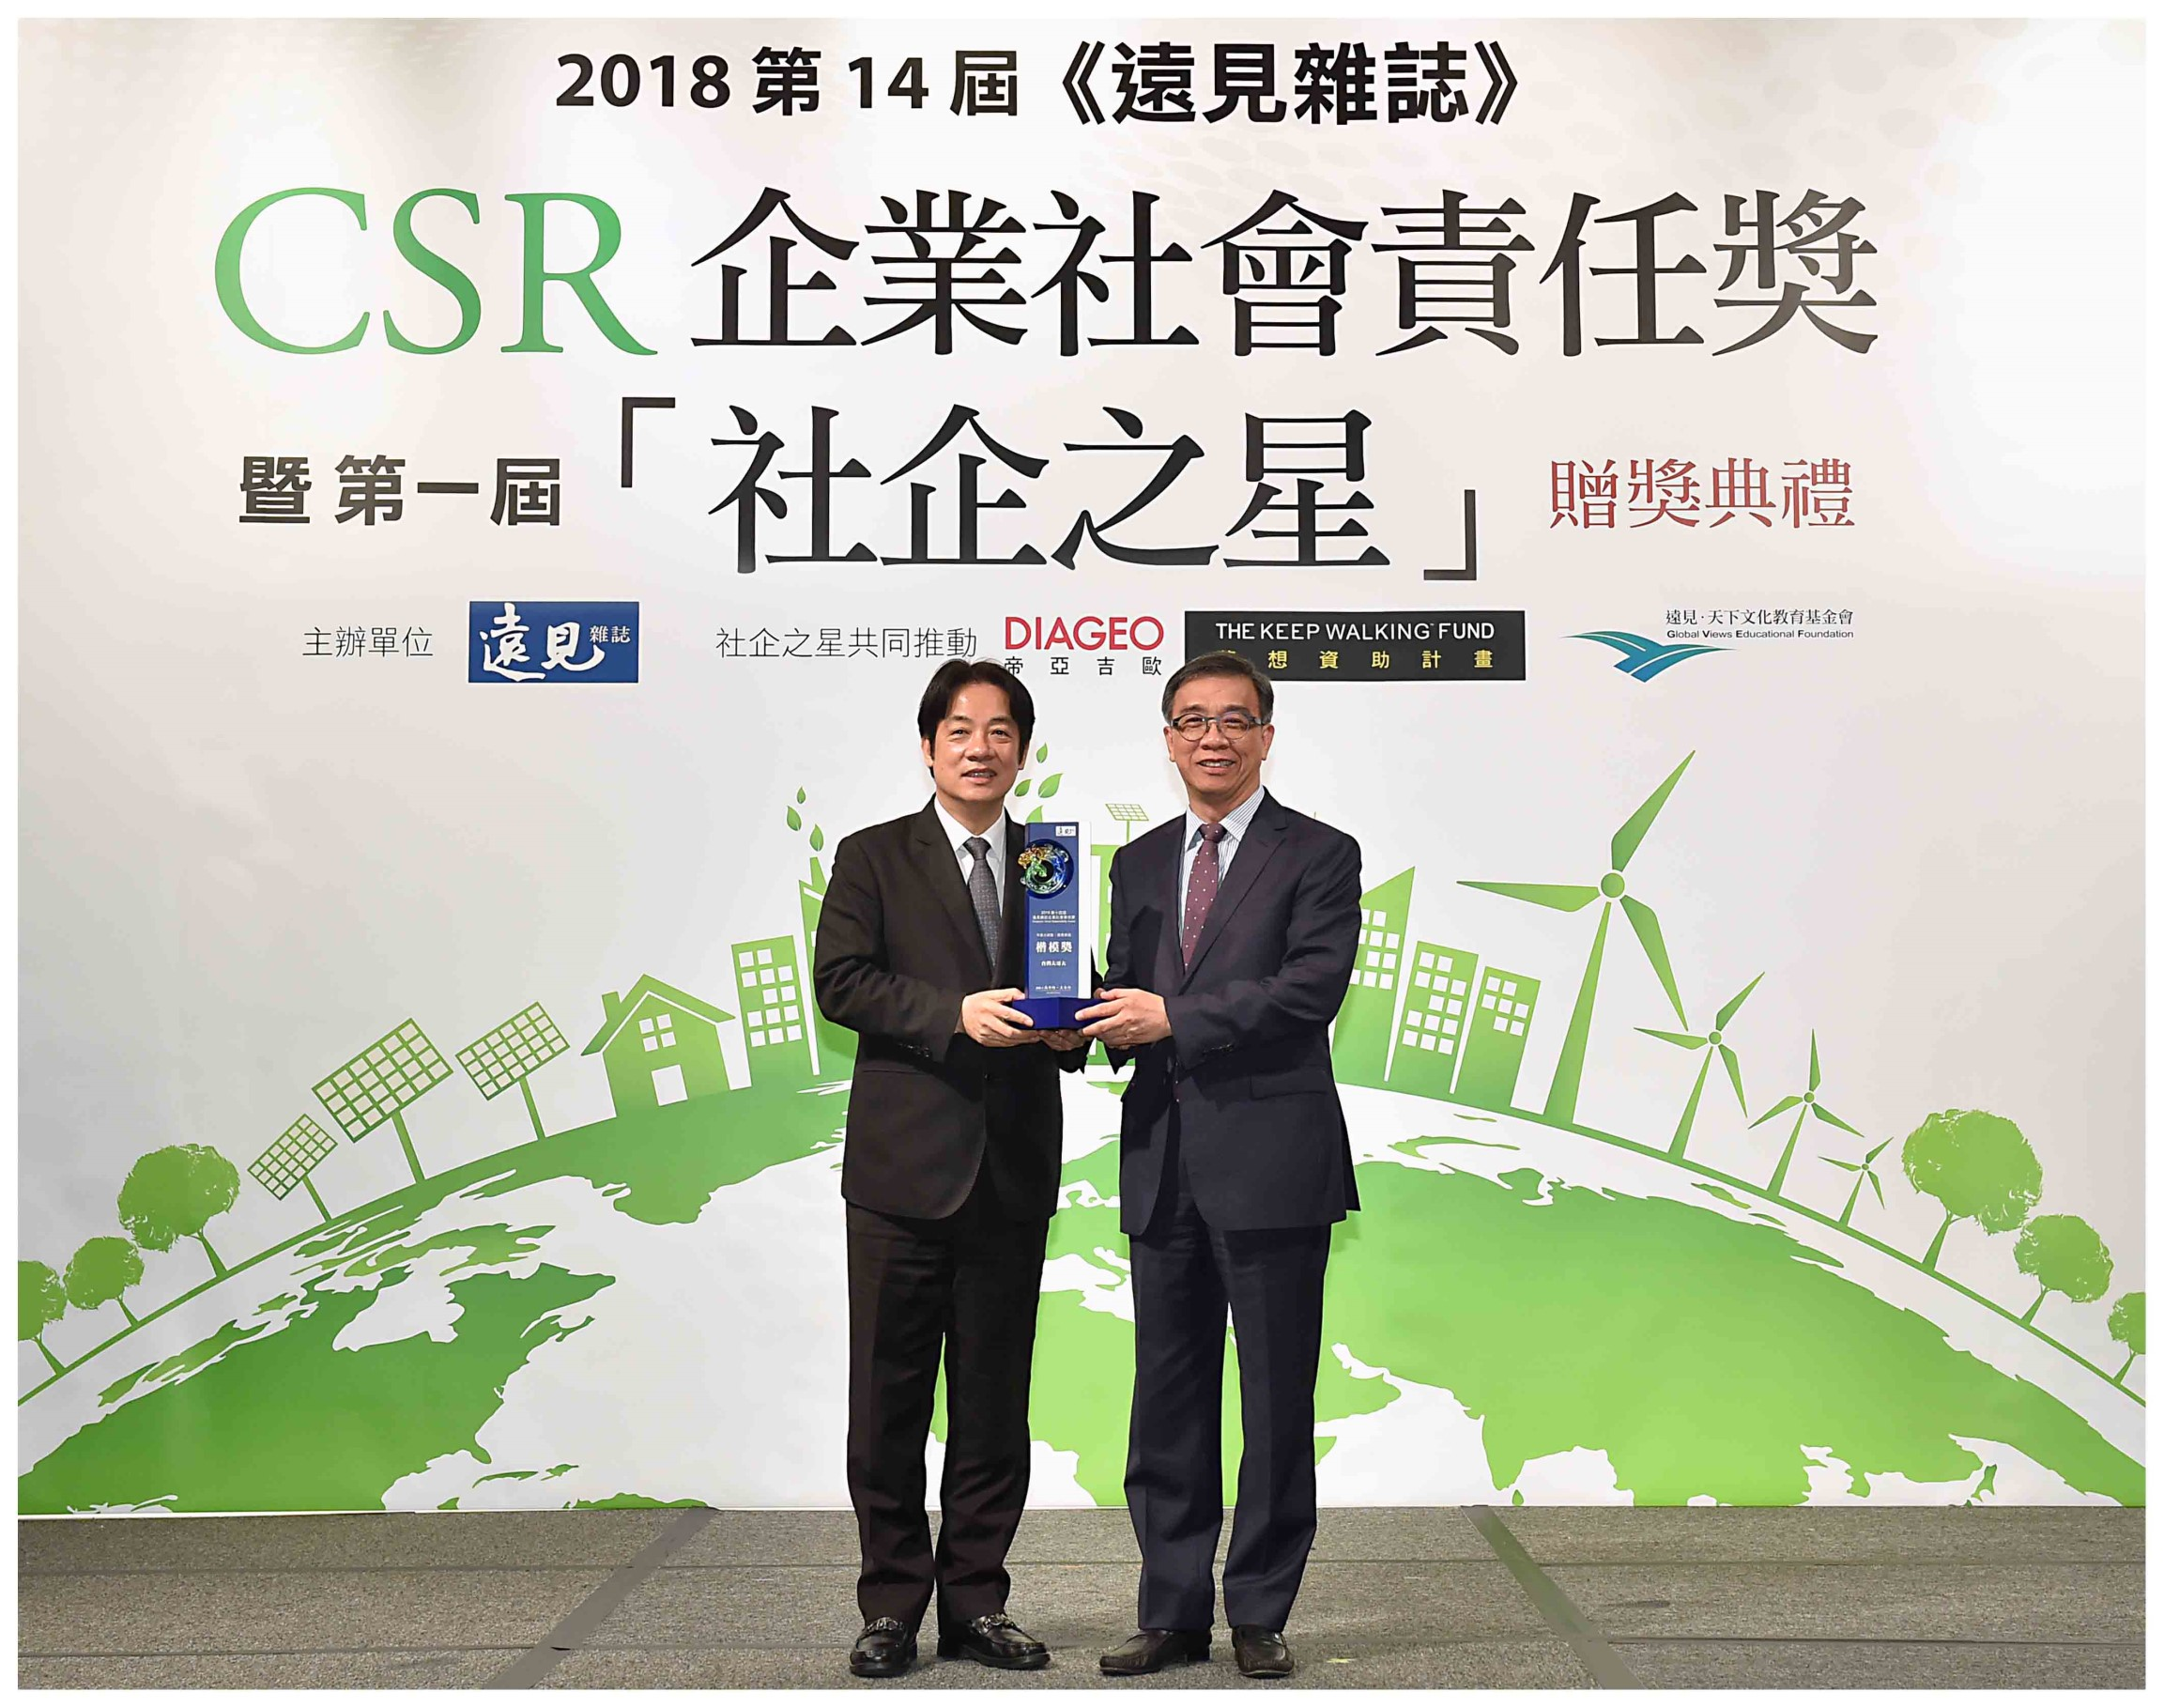 Quarterly financials taiwan mobile 4g lte internet services the results of the 14th global views monthly corporate social responsibility csr awards were announced today may 2 2018 taiwan mobile won the model malvernweather Gallery